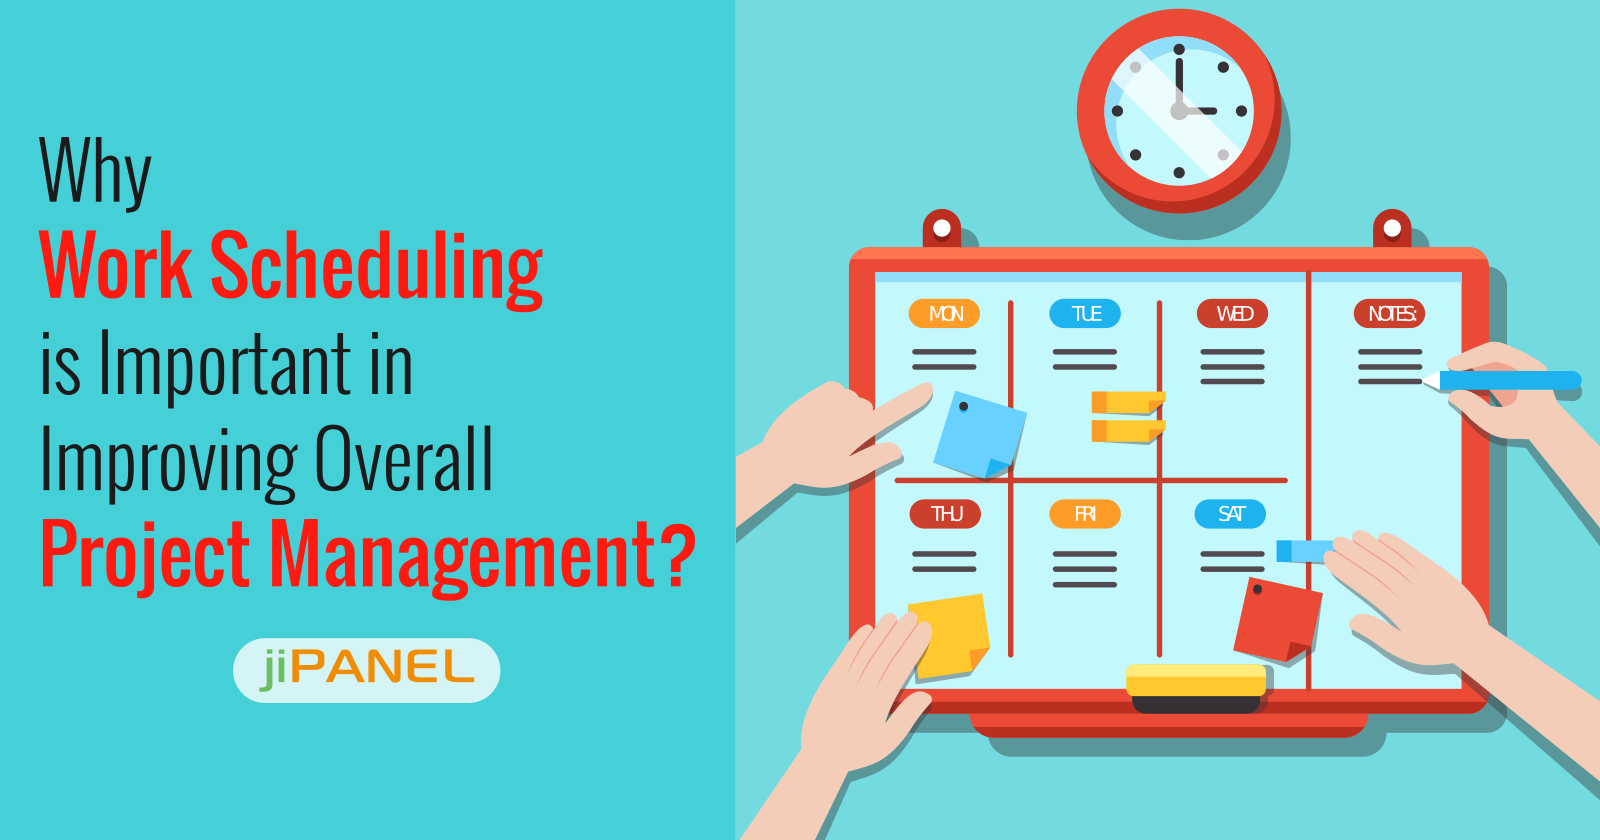 Why Work Scheduling is Important in Improving Overall Project Management?